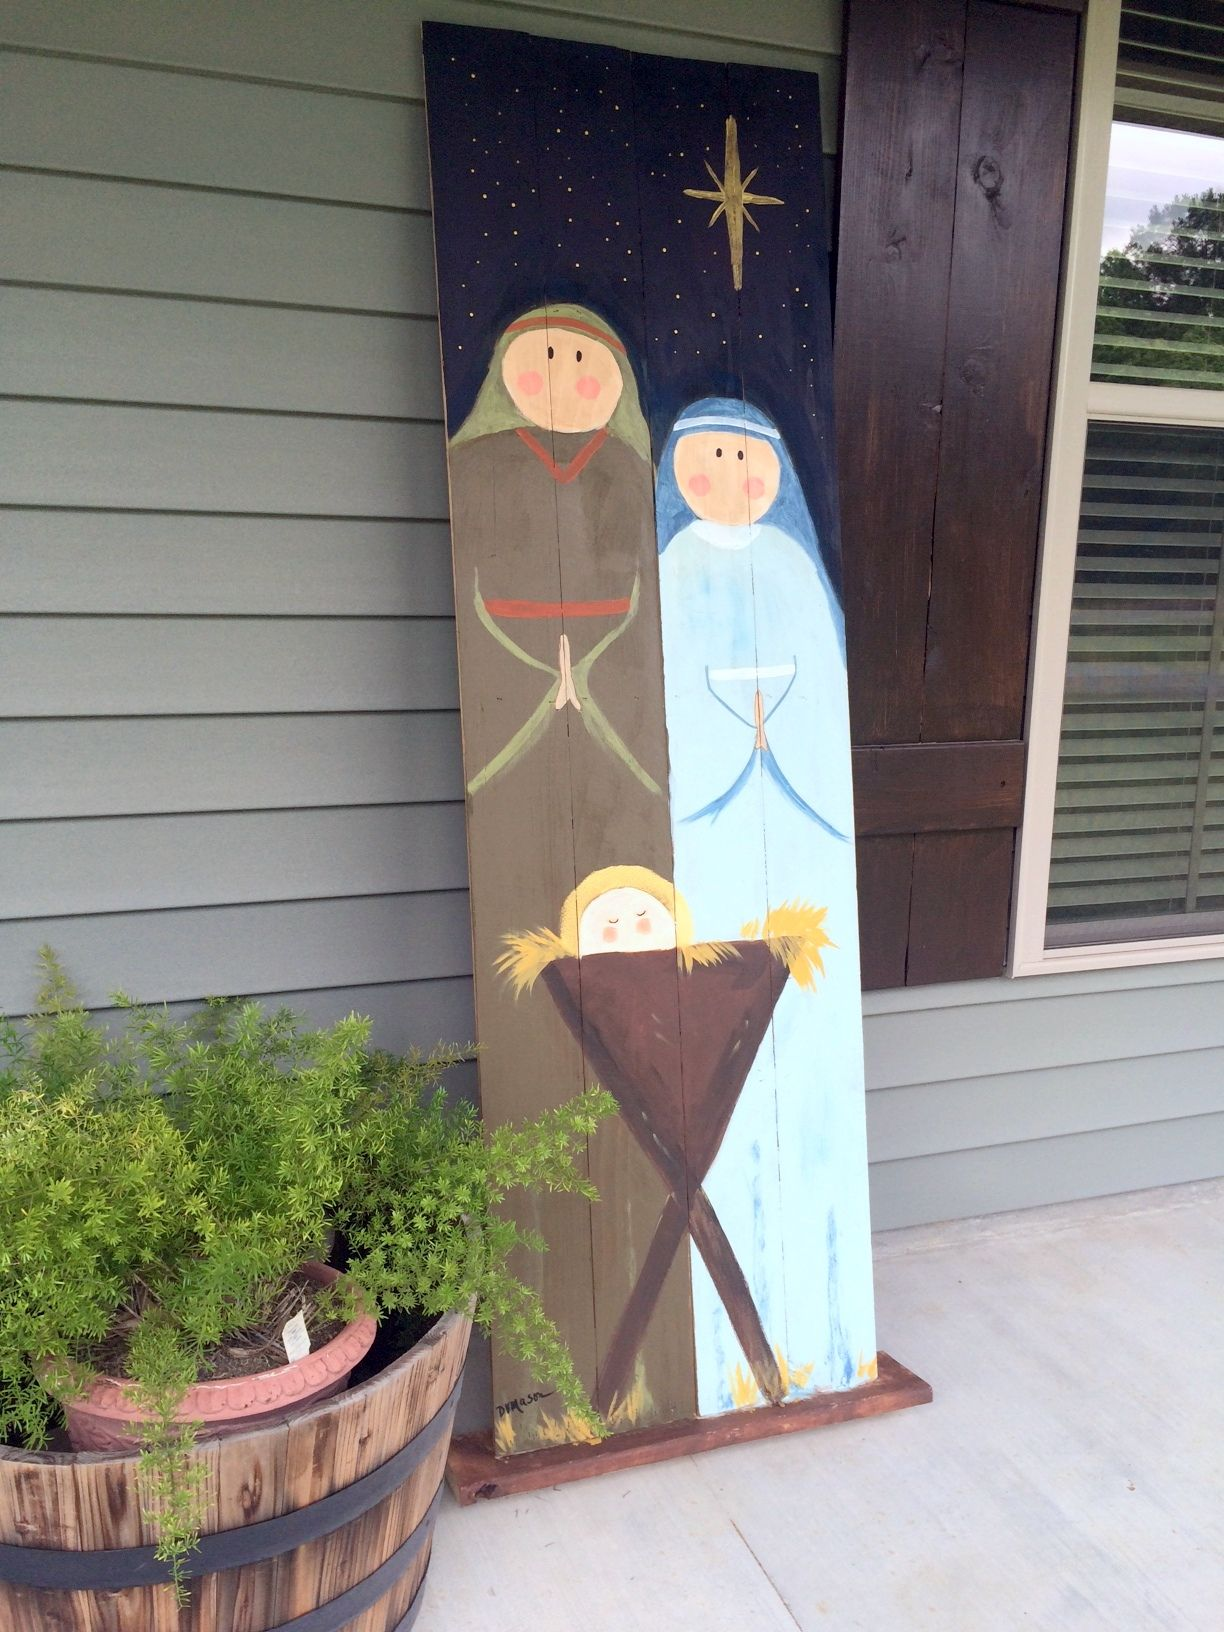 My Diy Hand Painted Life Size Outdoor Nativity Scene Christmas Wood Christmas Crafts Christmas Deco